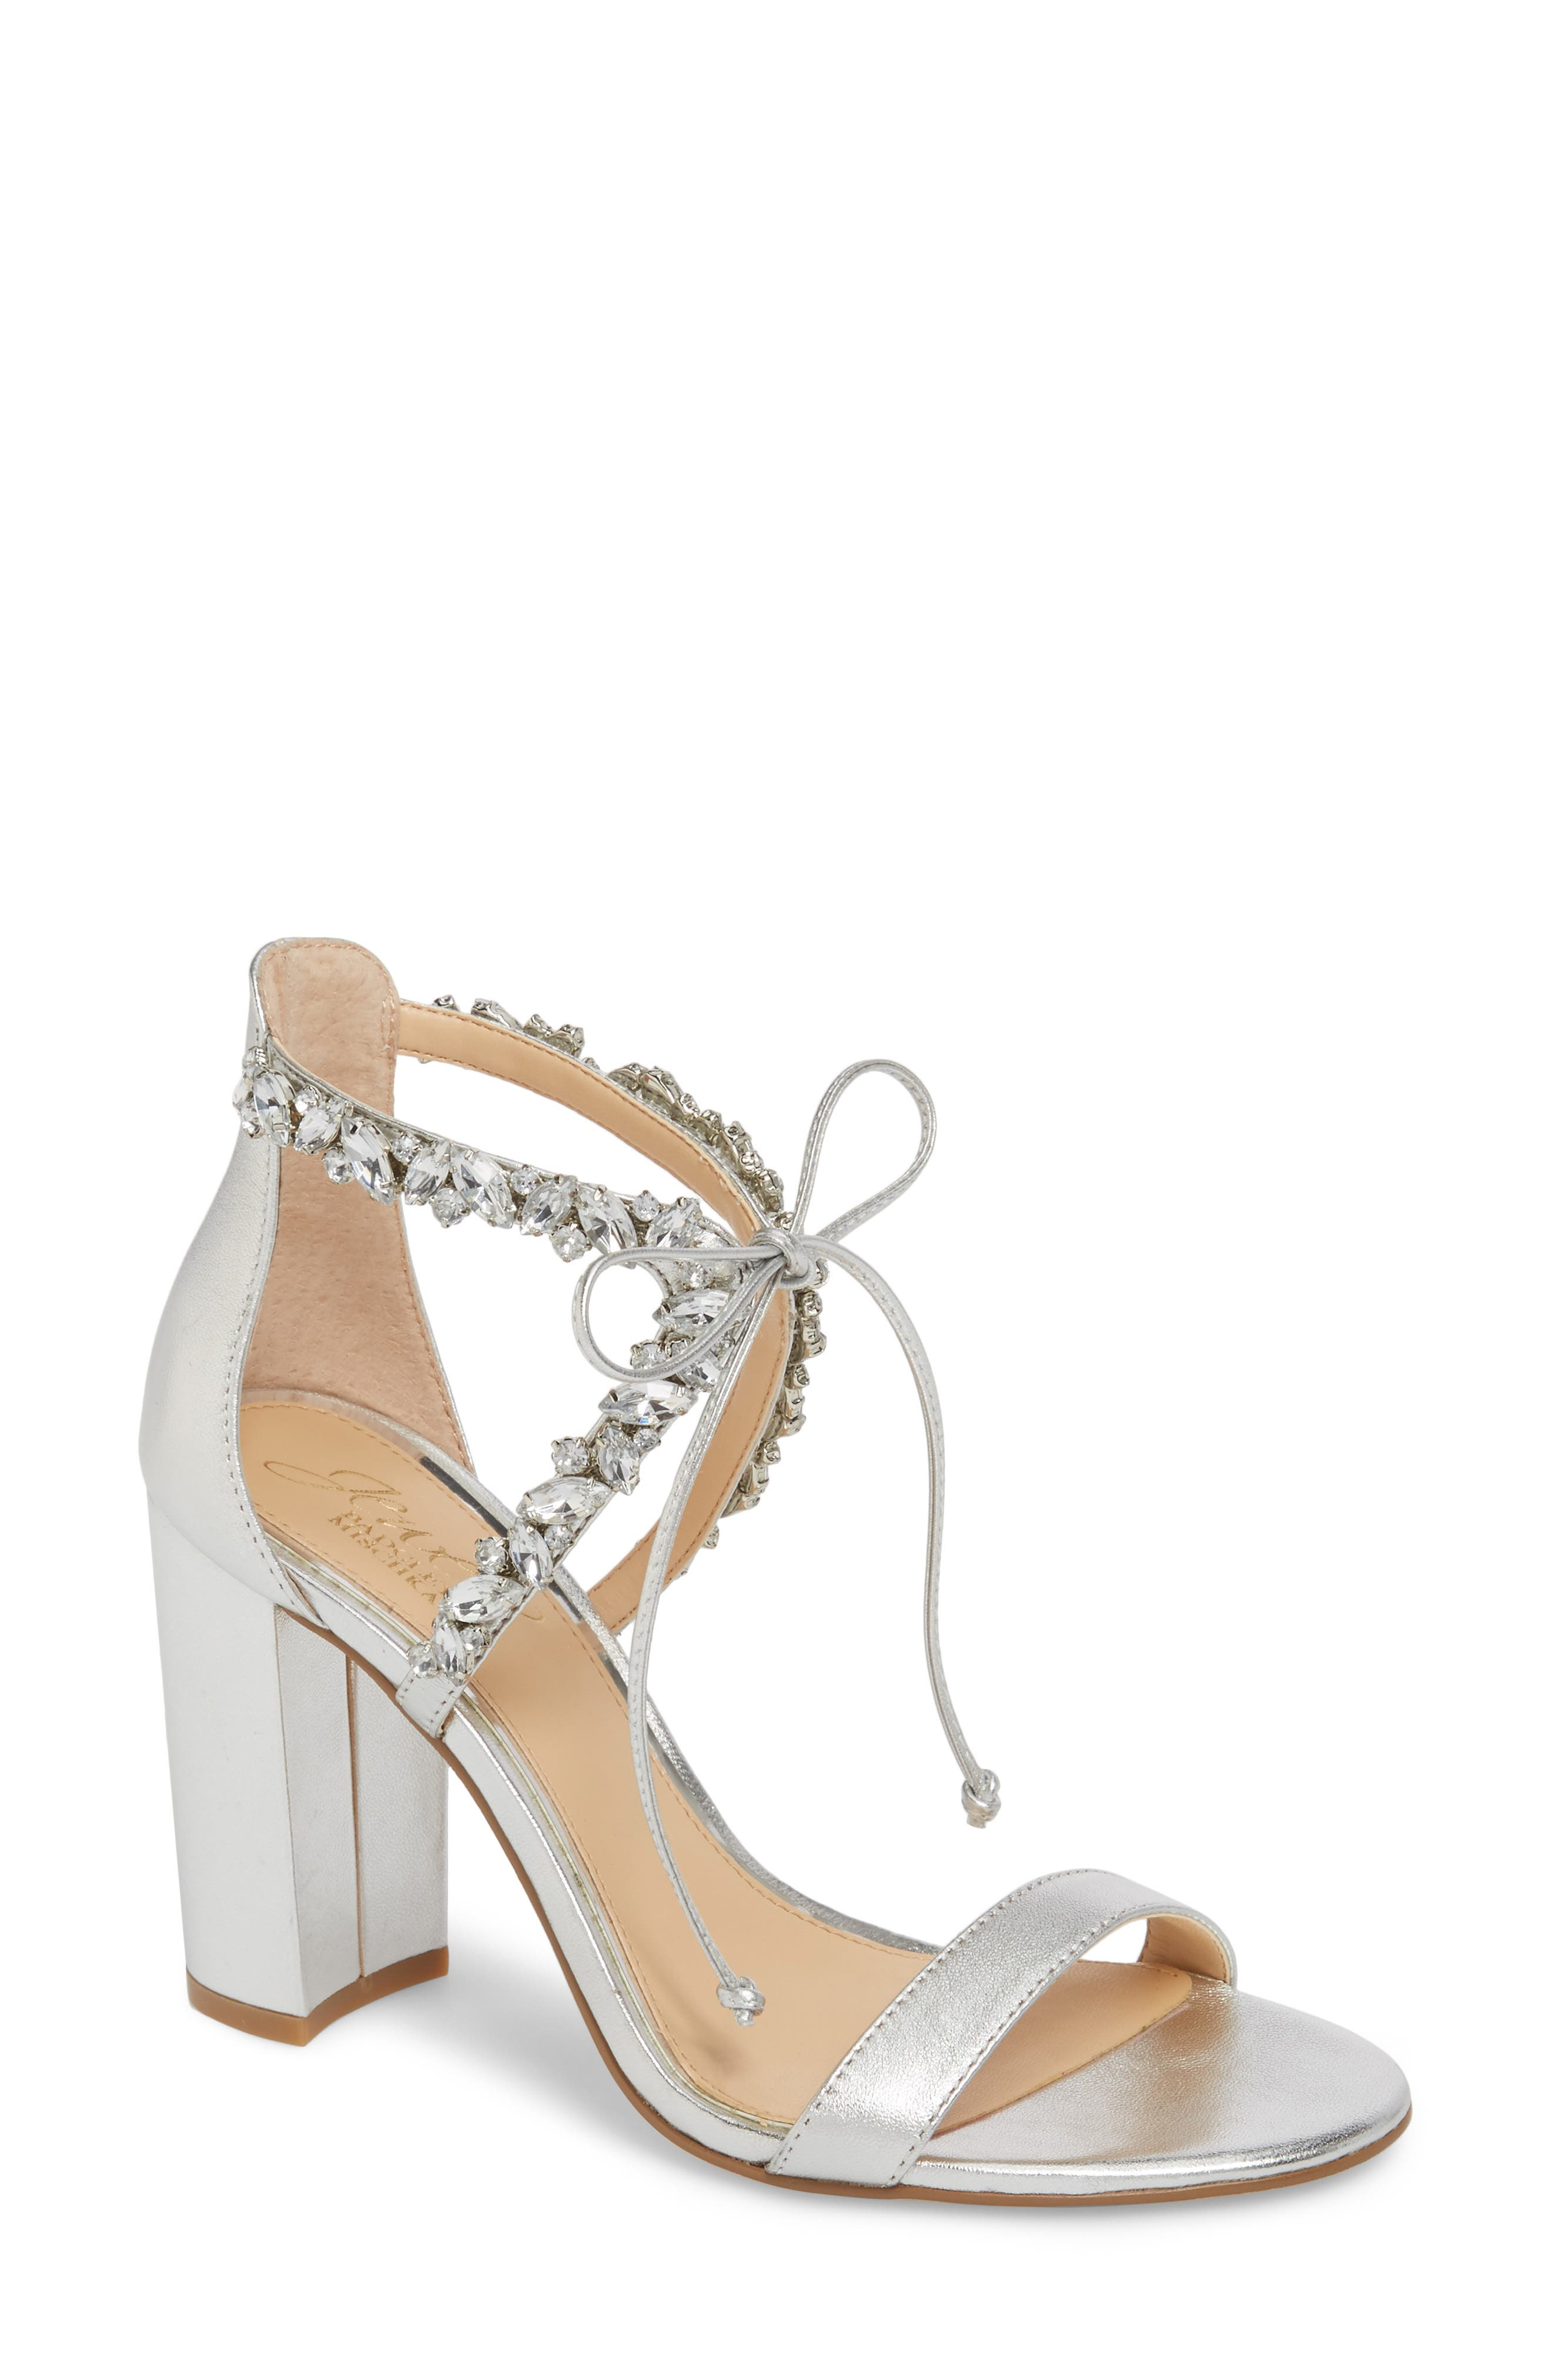 Thamar Embellished Sandal,                             Main thumbnail 1, color,                             Silver Leather